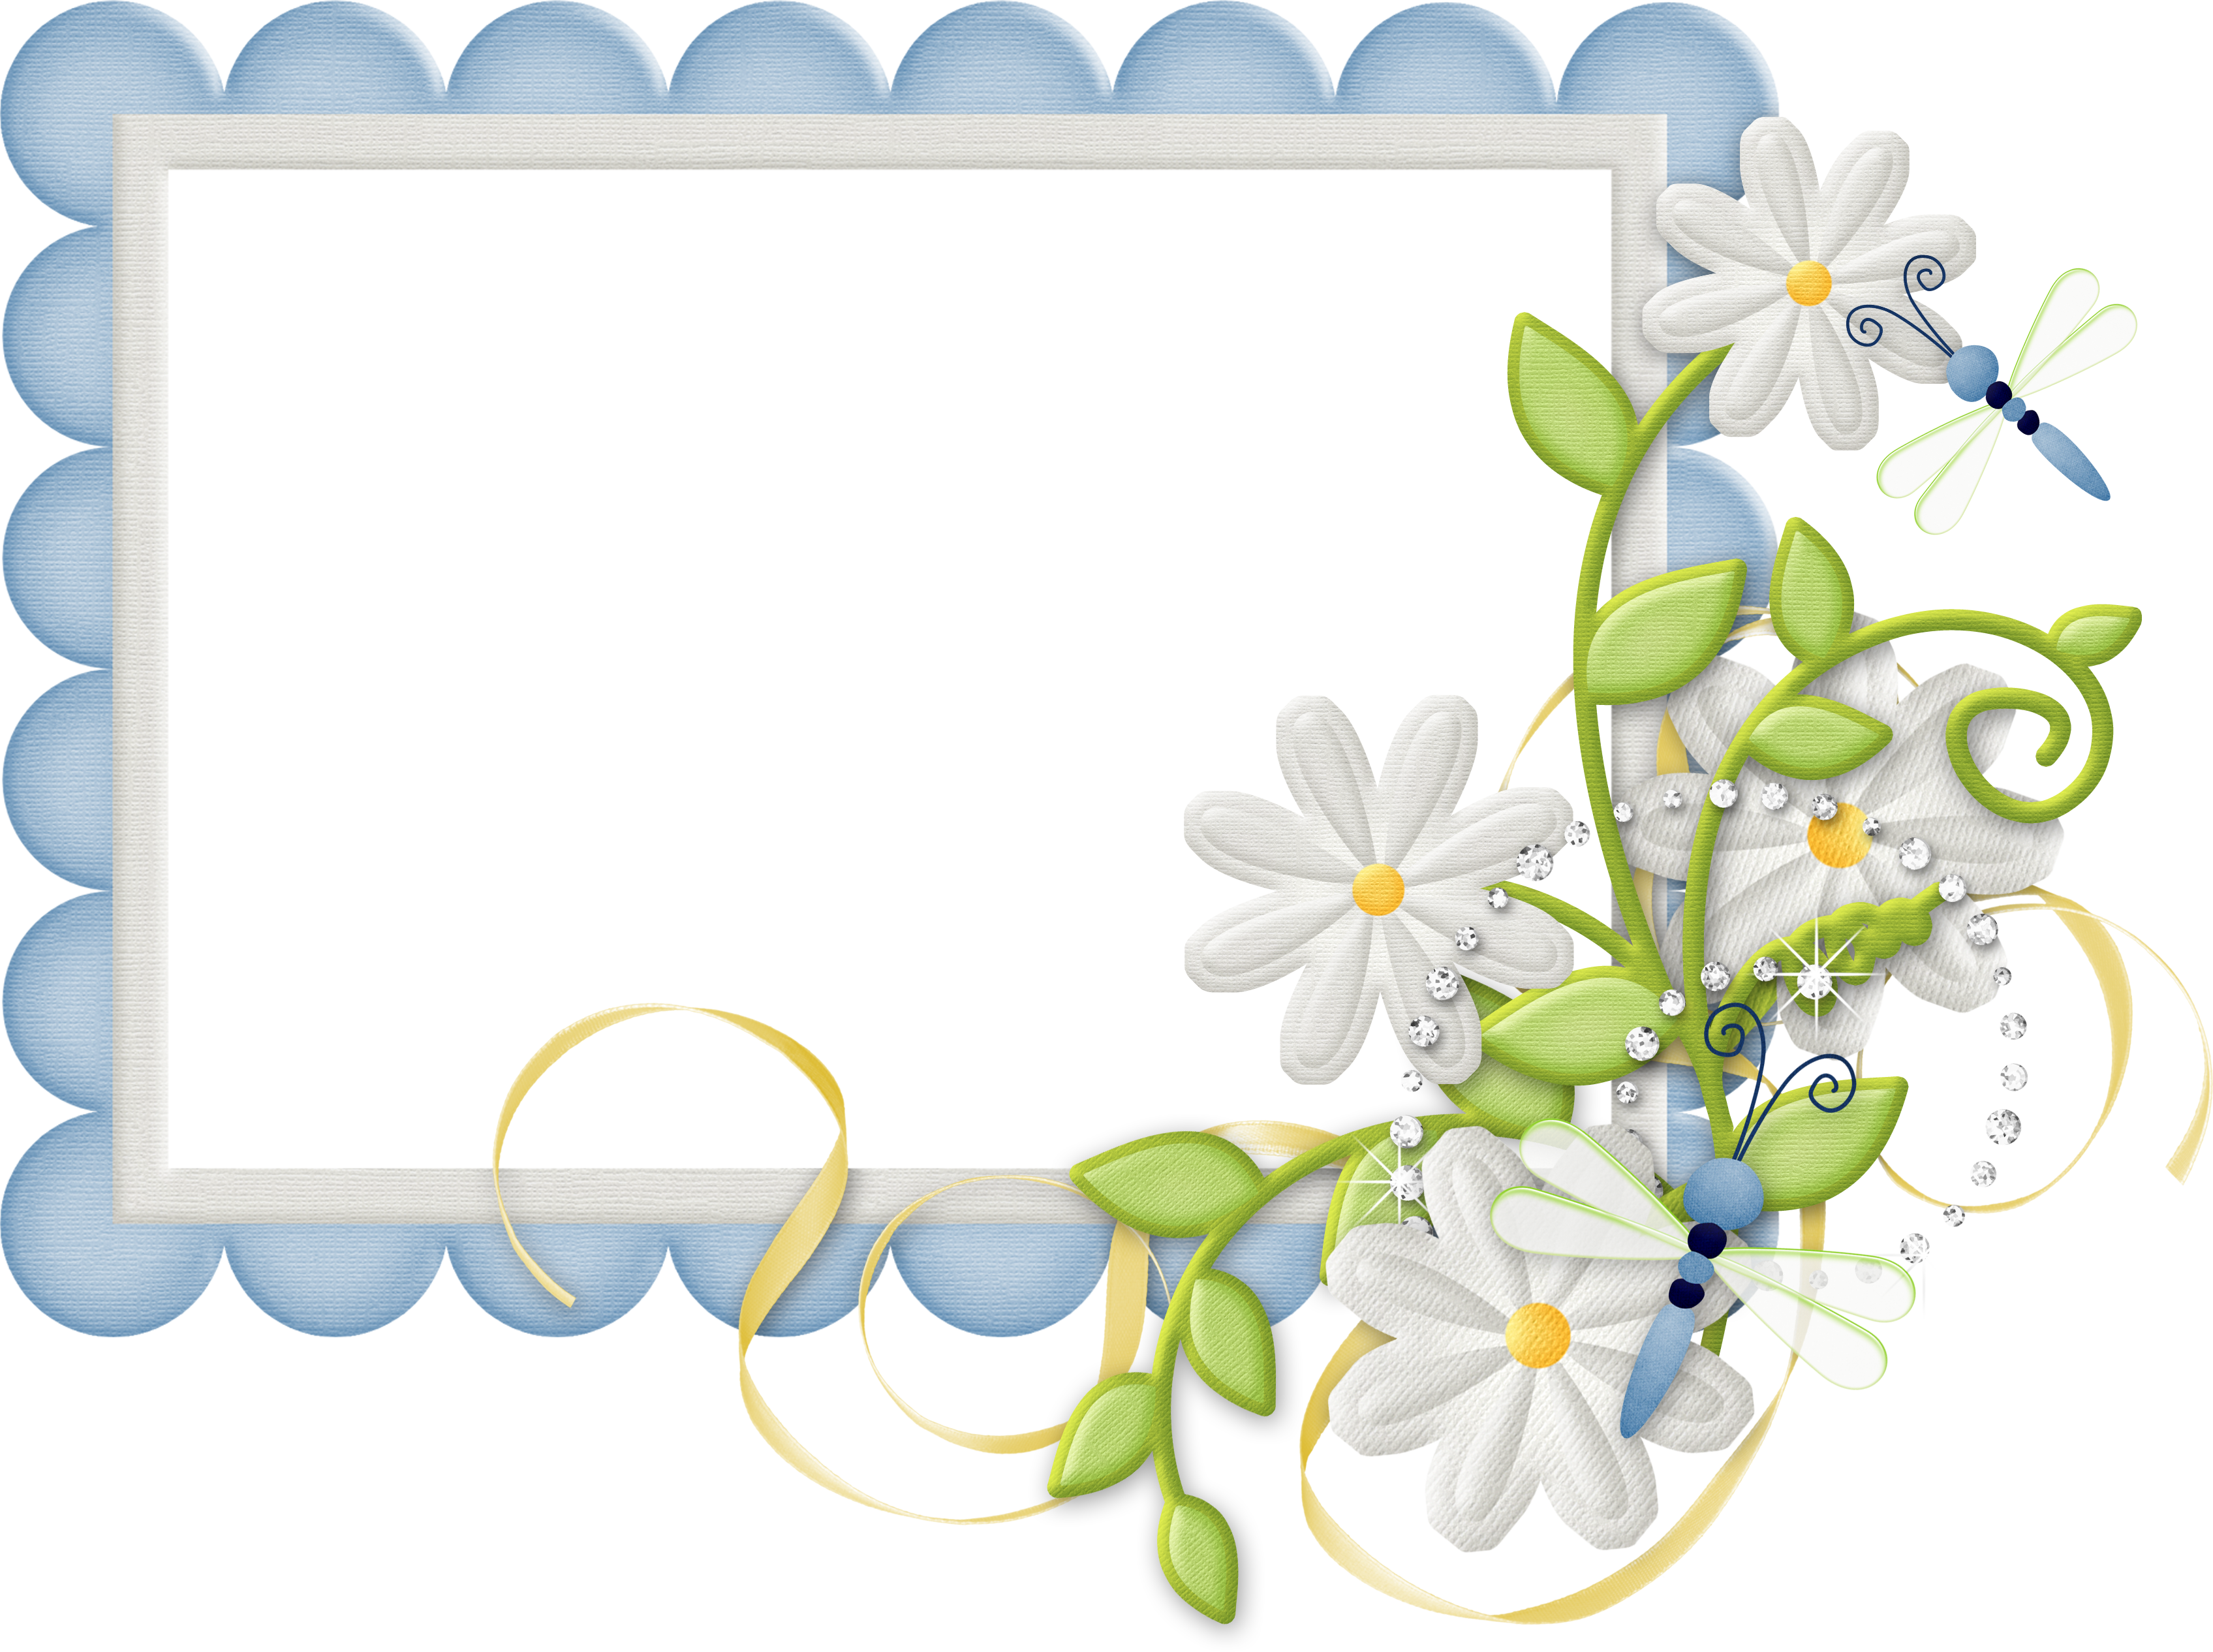 Frame design png. Cute large blue transparent